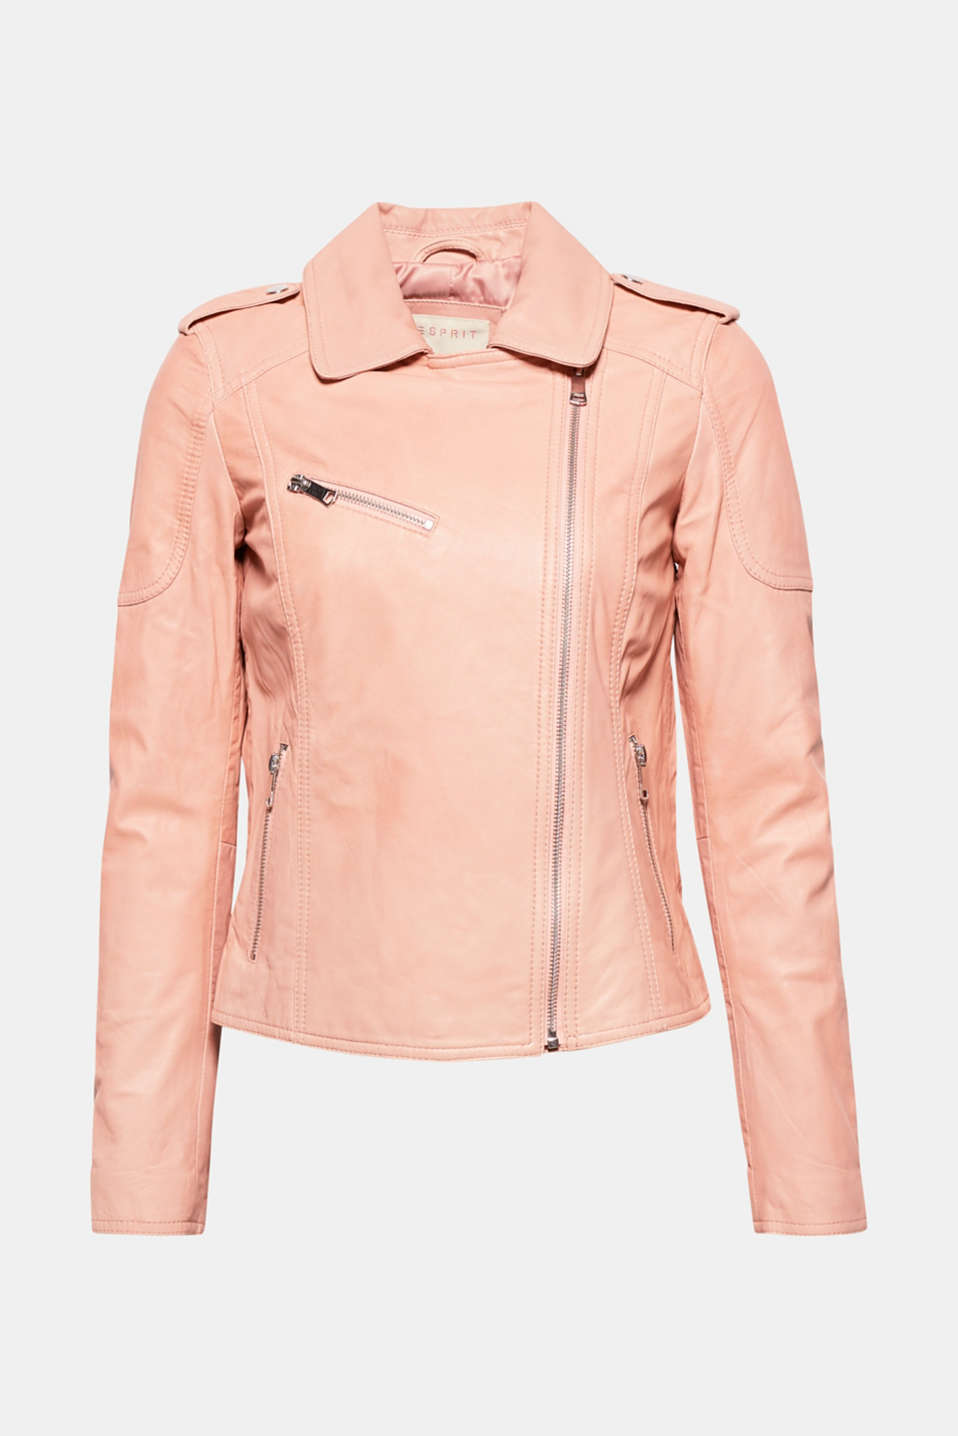 The super-soft leather in delicate trend colours make this biker jacket a must-have!